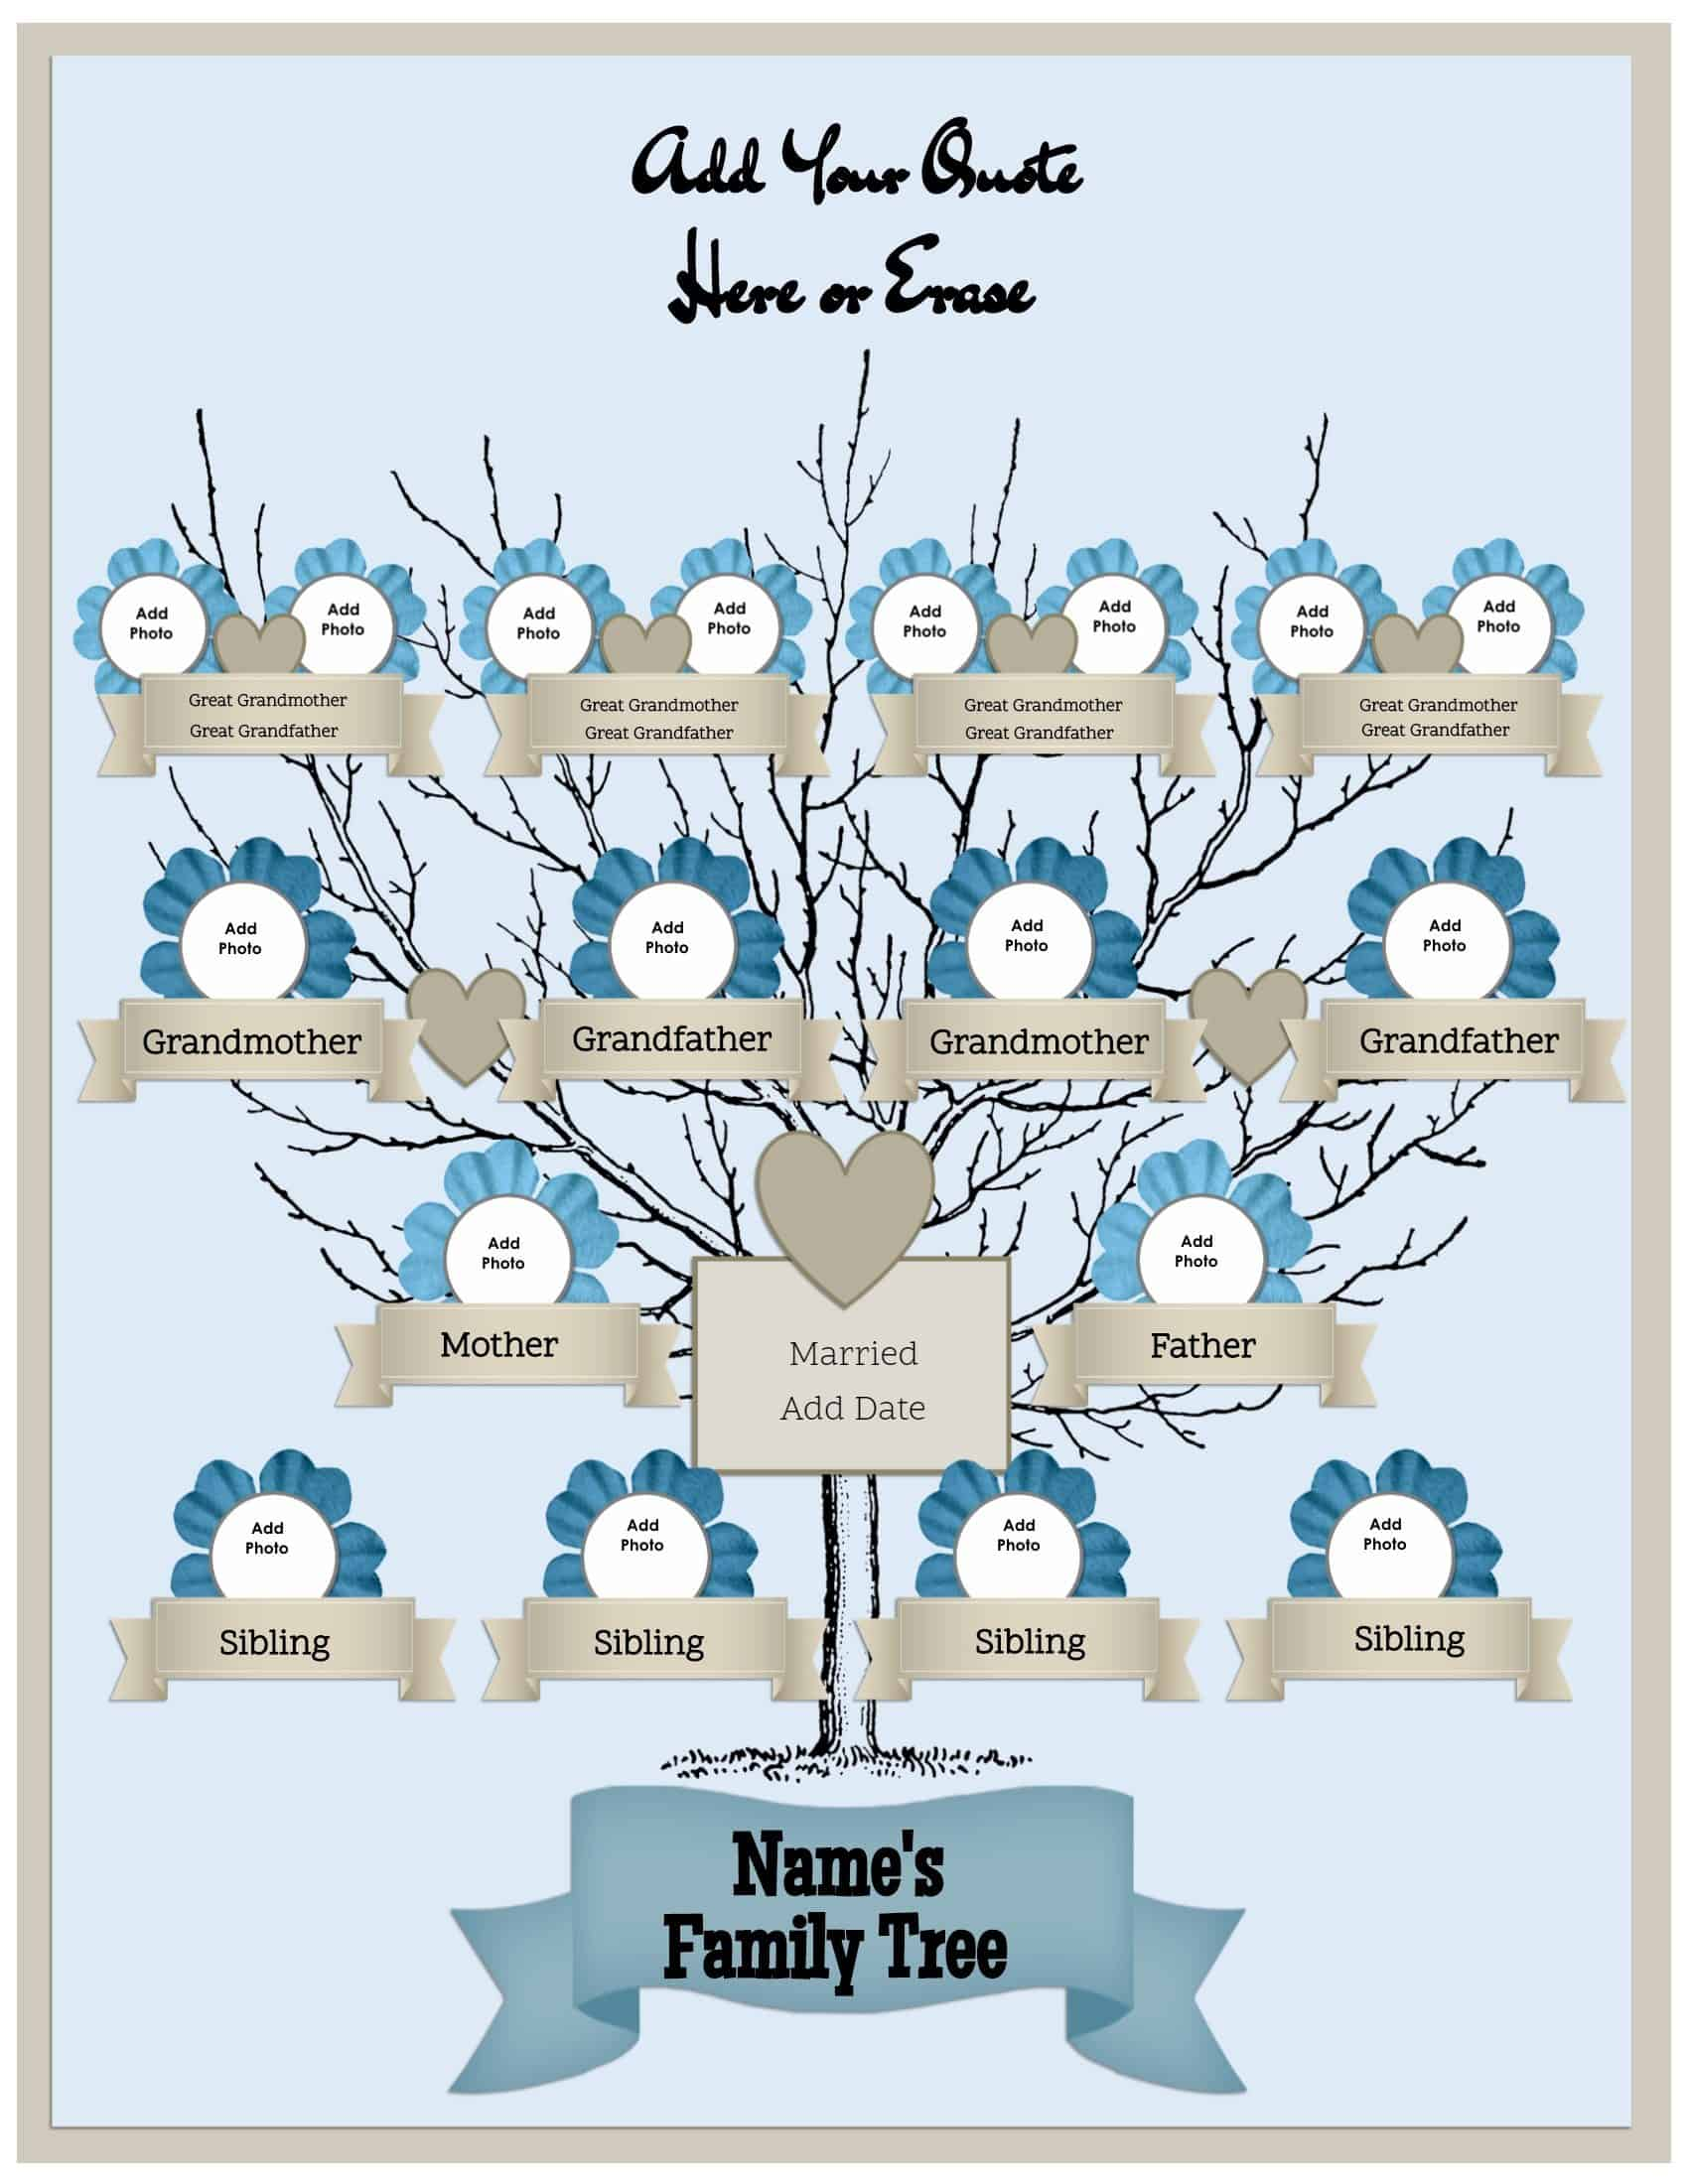 4 generation family tree template free to customize  u0026 print